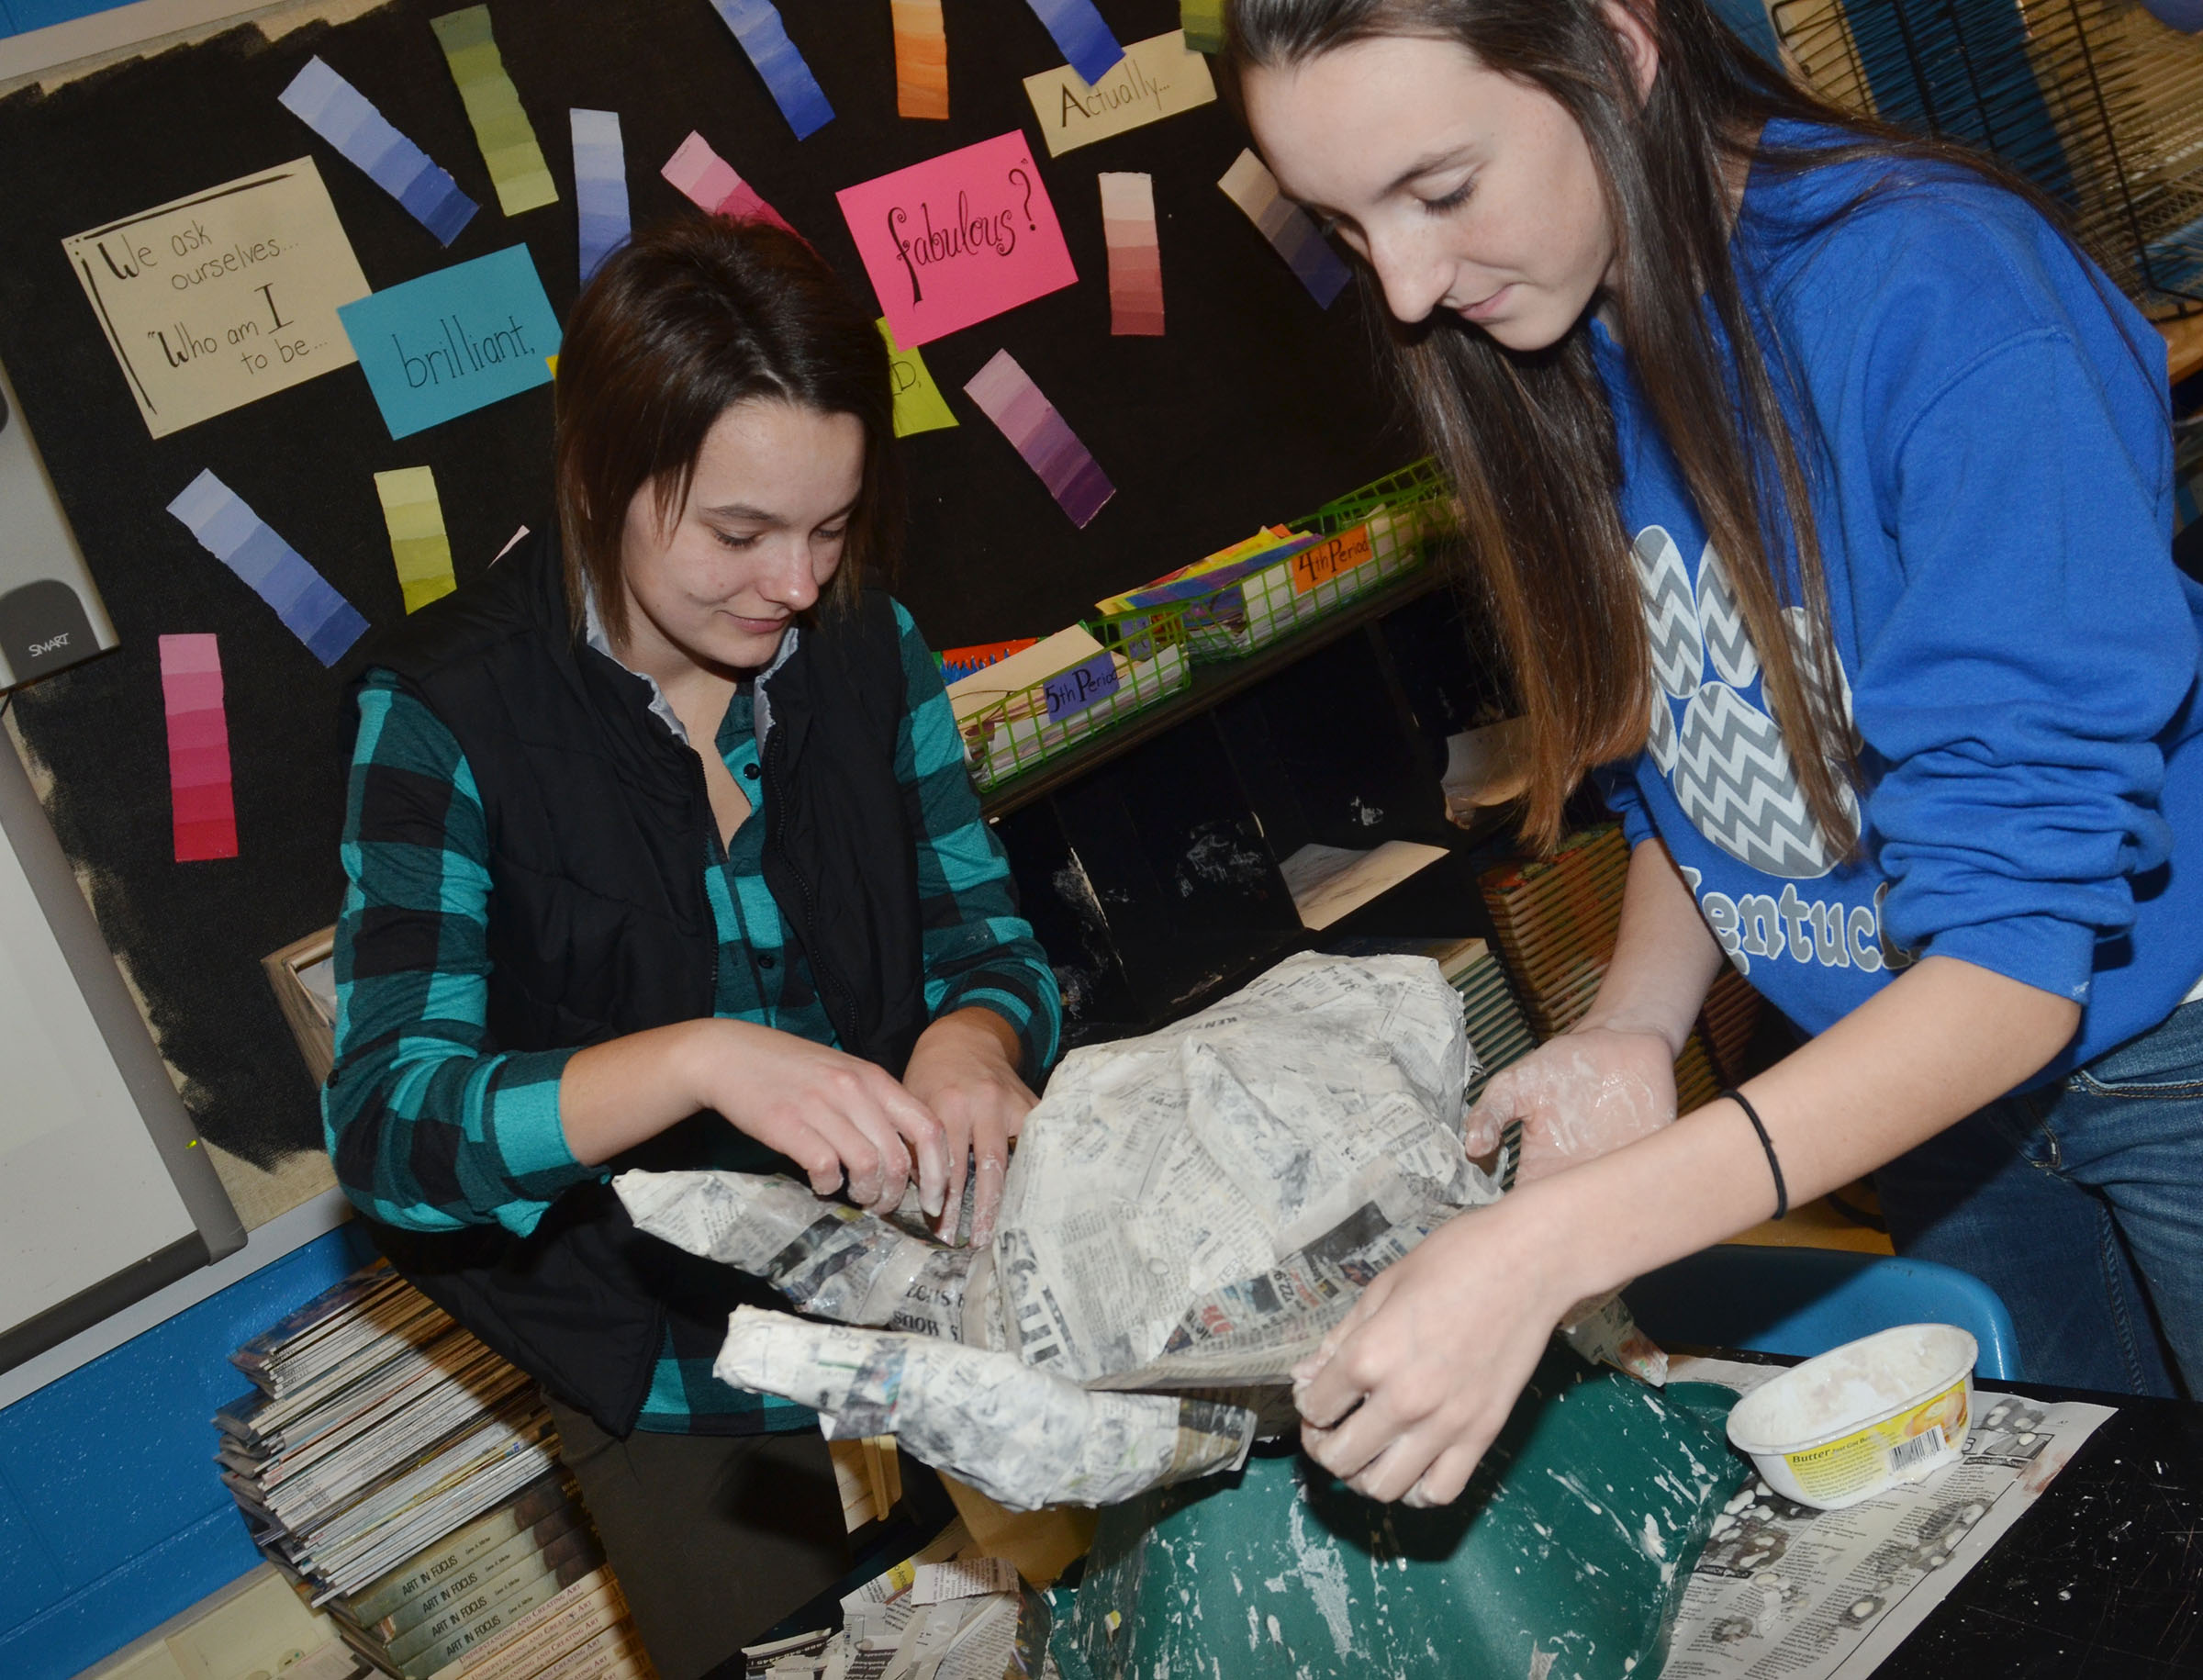 CHS senior Kyrsten Hill, at left, and sophomore Zoe McAninch form their paper mache sculpture.